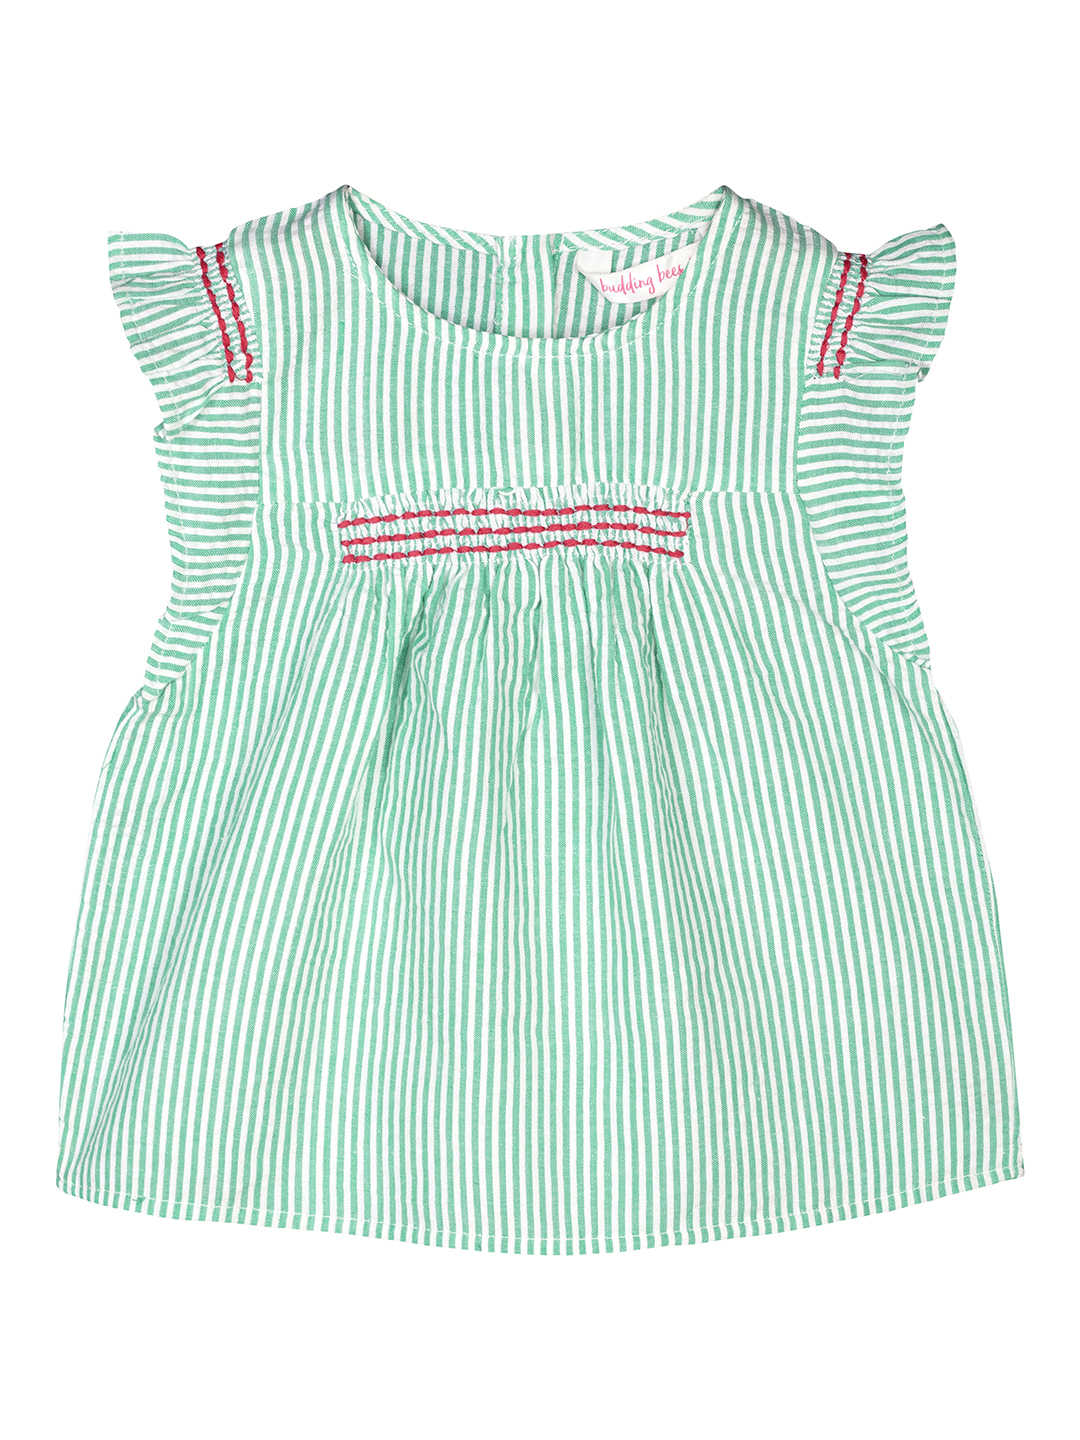 Budding Bees | Budding Bees Infants Girls Striped with Smocked Top-Greeen